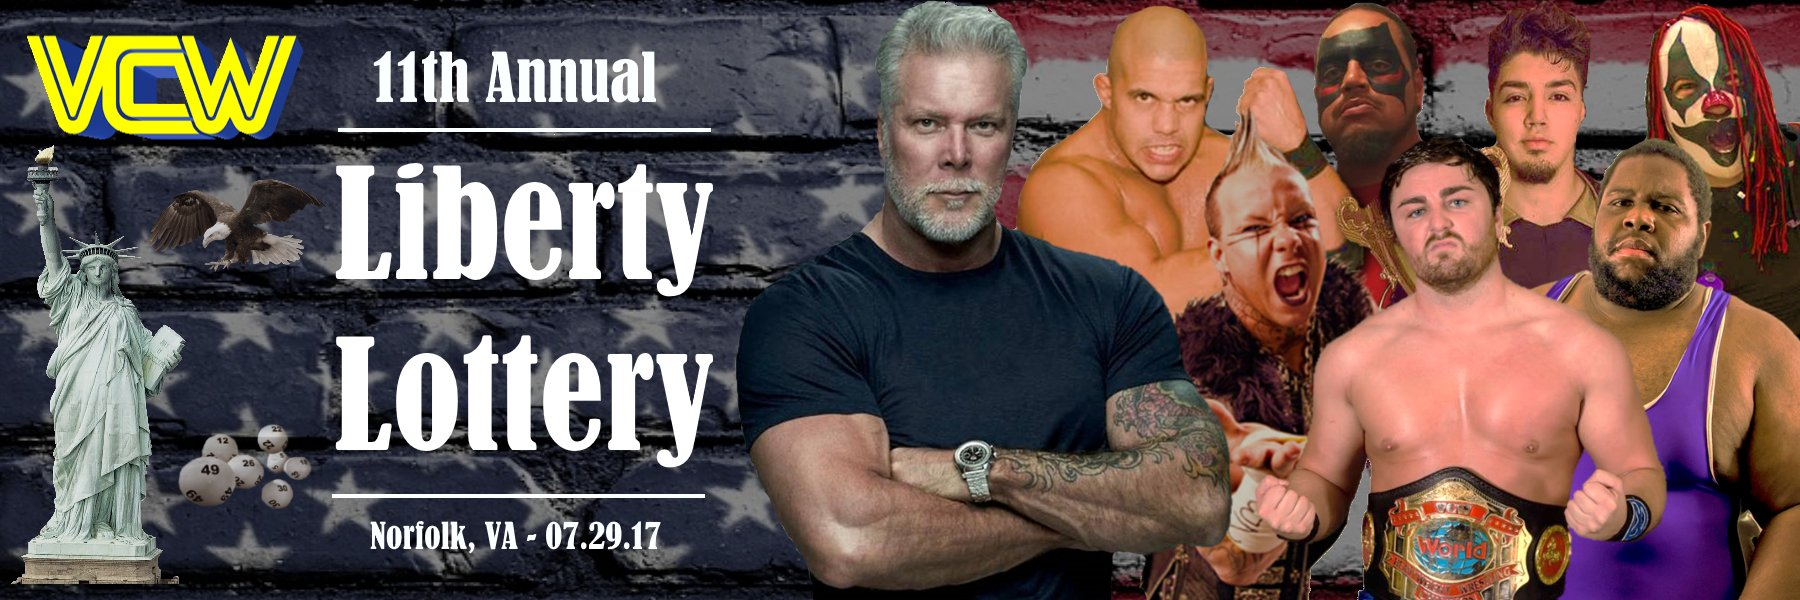 Available Now!  VCW Liberty Lottery 2017!  With special guest: Kevin Nash!